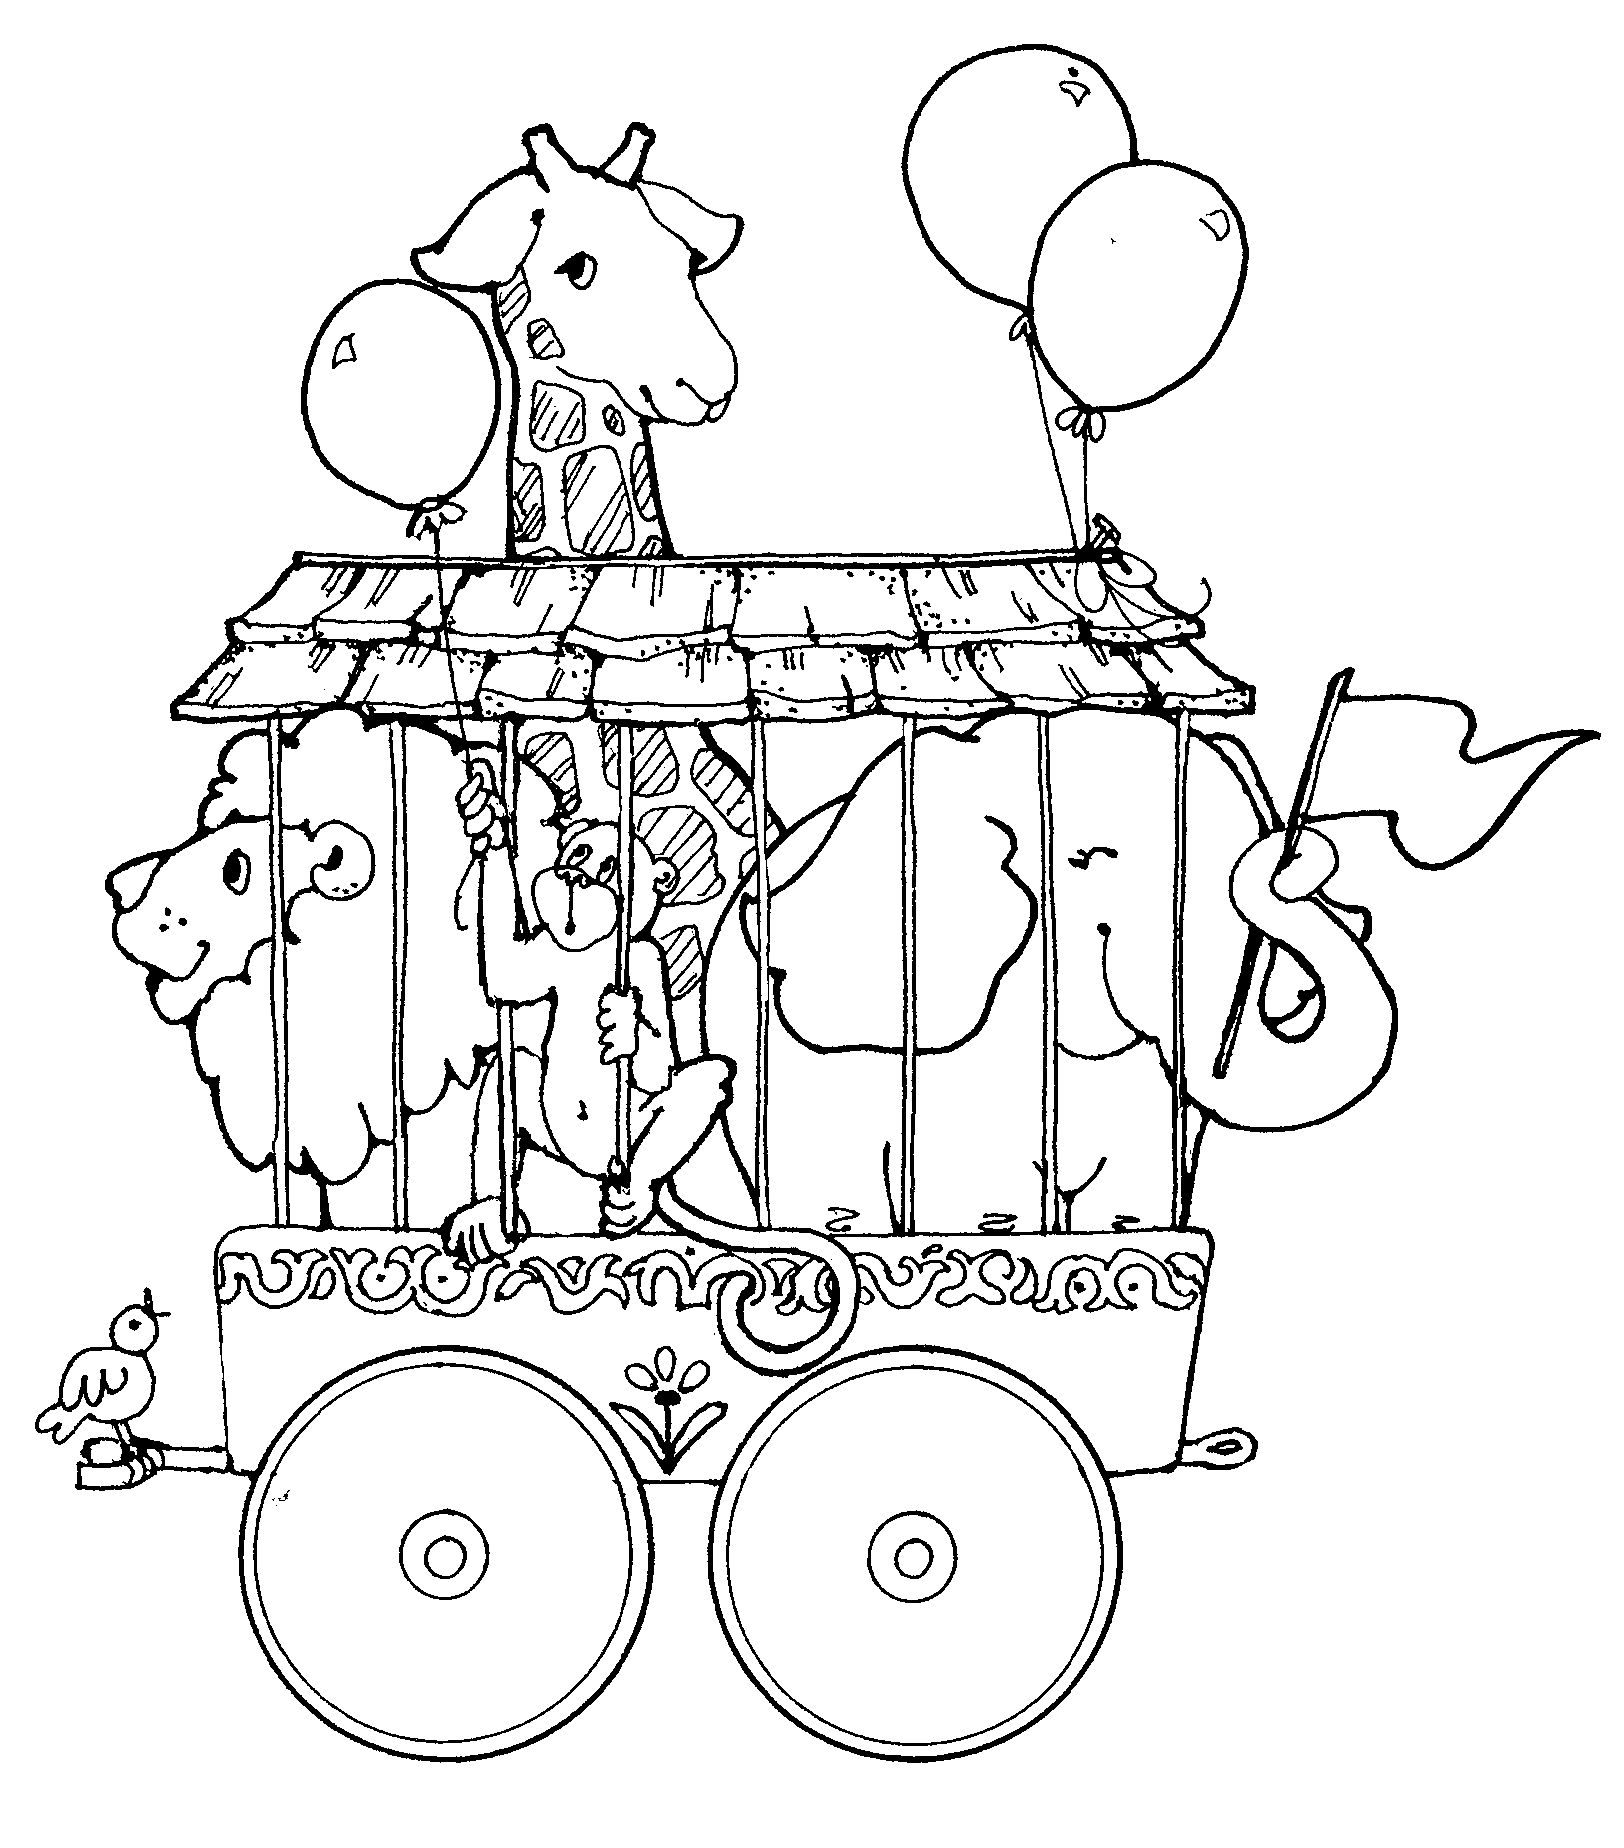 Pin By Yomio On Train Printables Lion Coloring Pages Vintage Coloring Books Train Coloring Pages